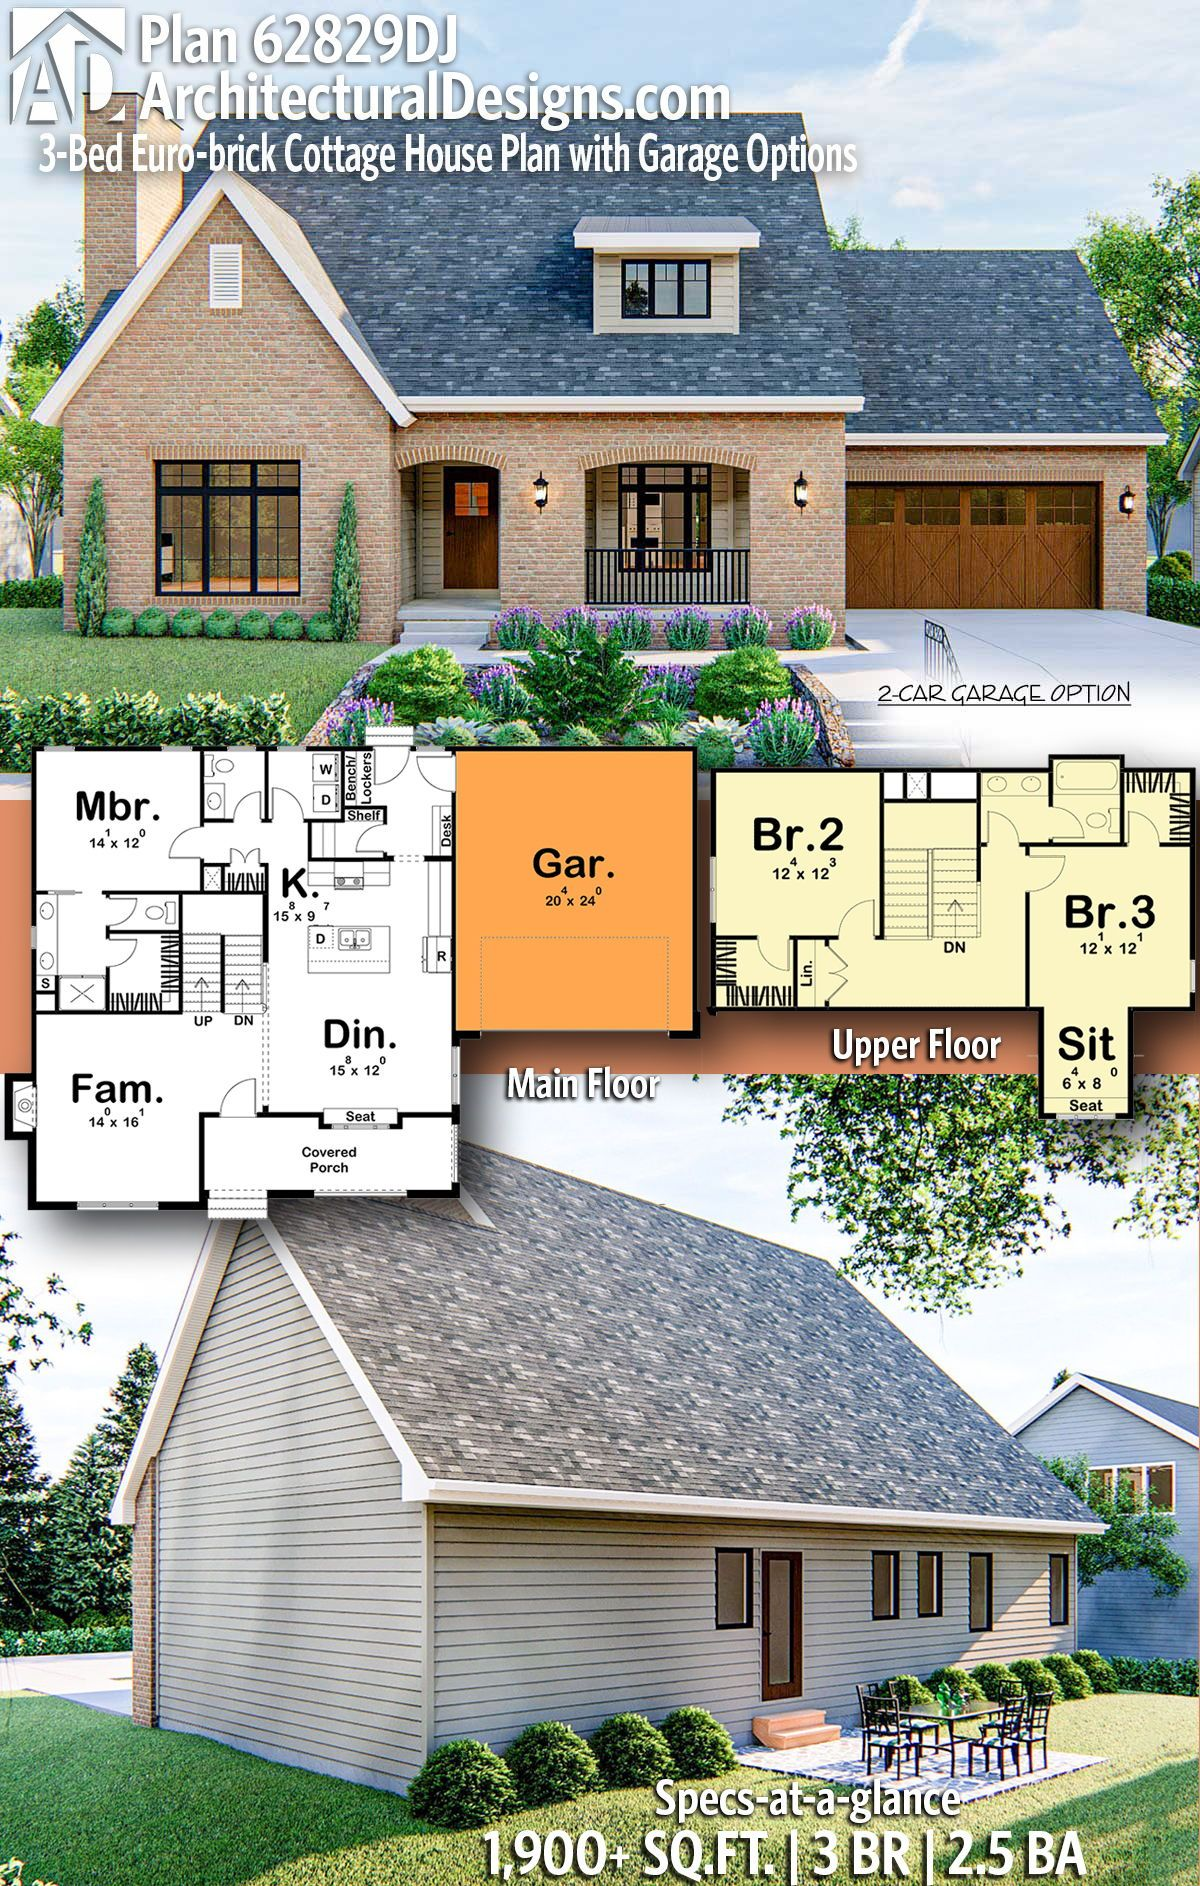 Plan 62829dj 3 Bed Euro Brick Cottage House Plan With Garage Options Country Cottage House Plans Brick Cottage House Plans